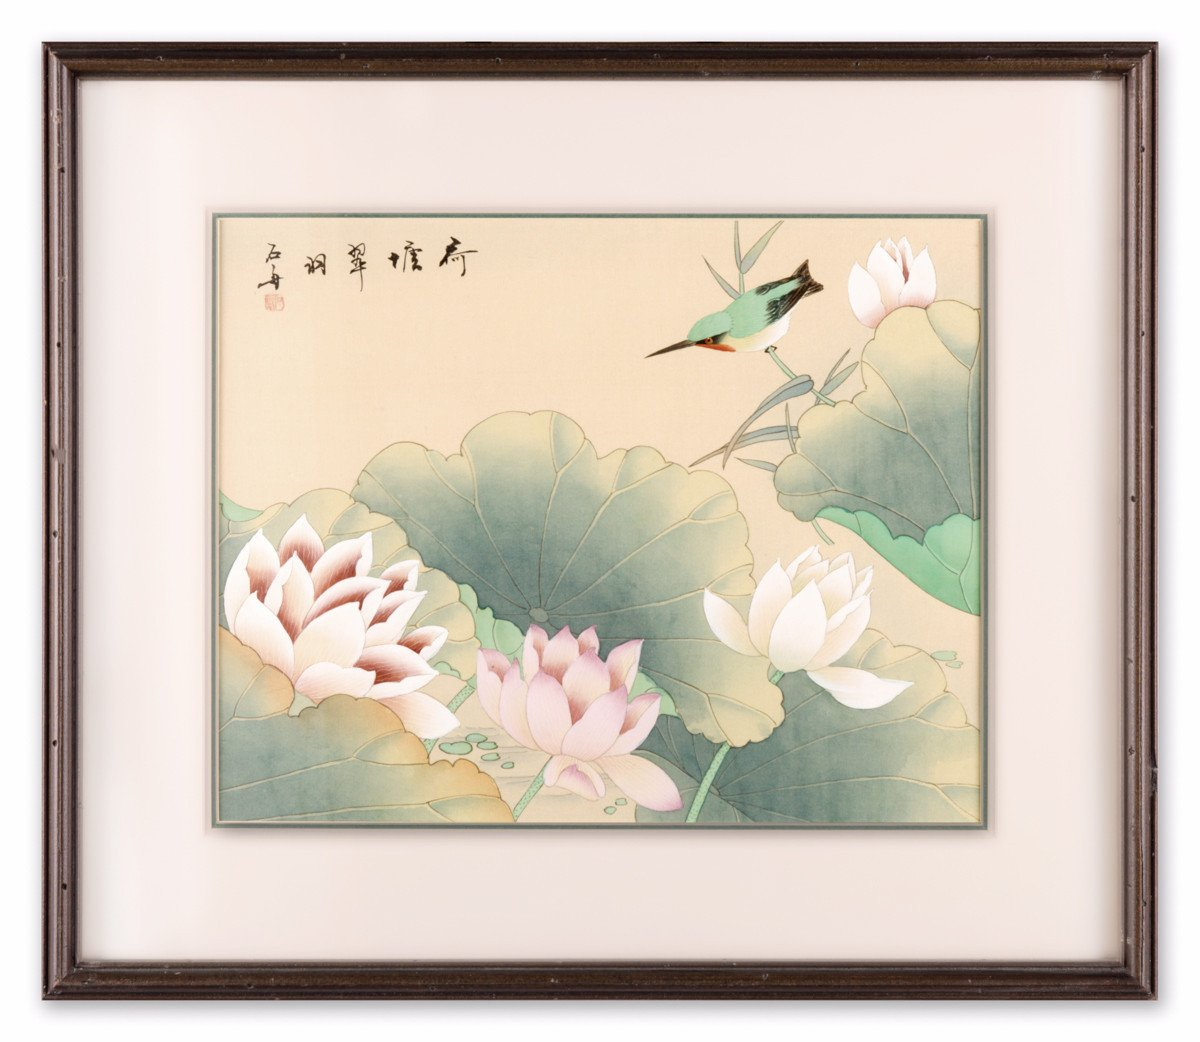 Hummingbirsd & Waterlillies - Fine Art Lithography - Framed Art